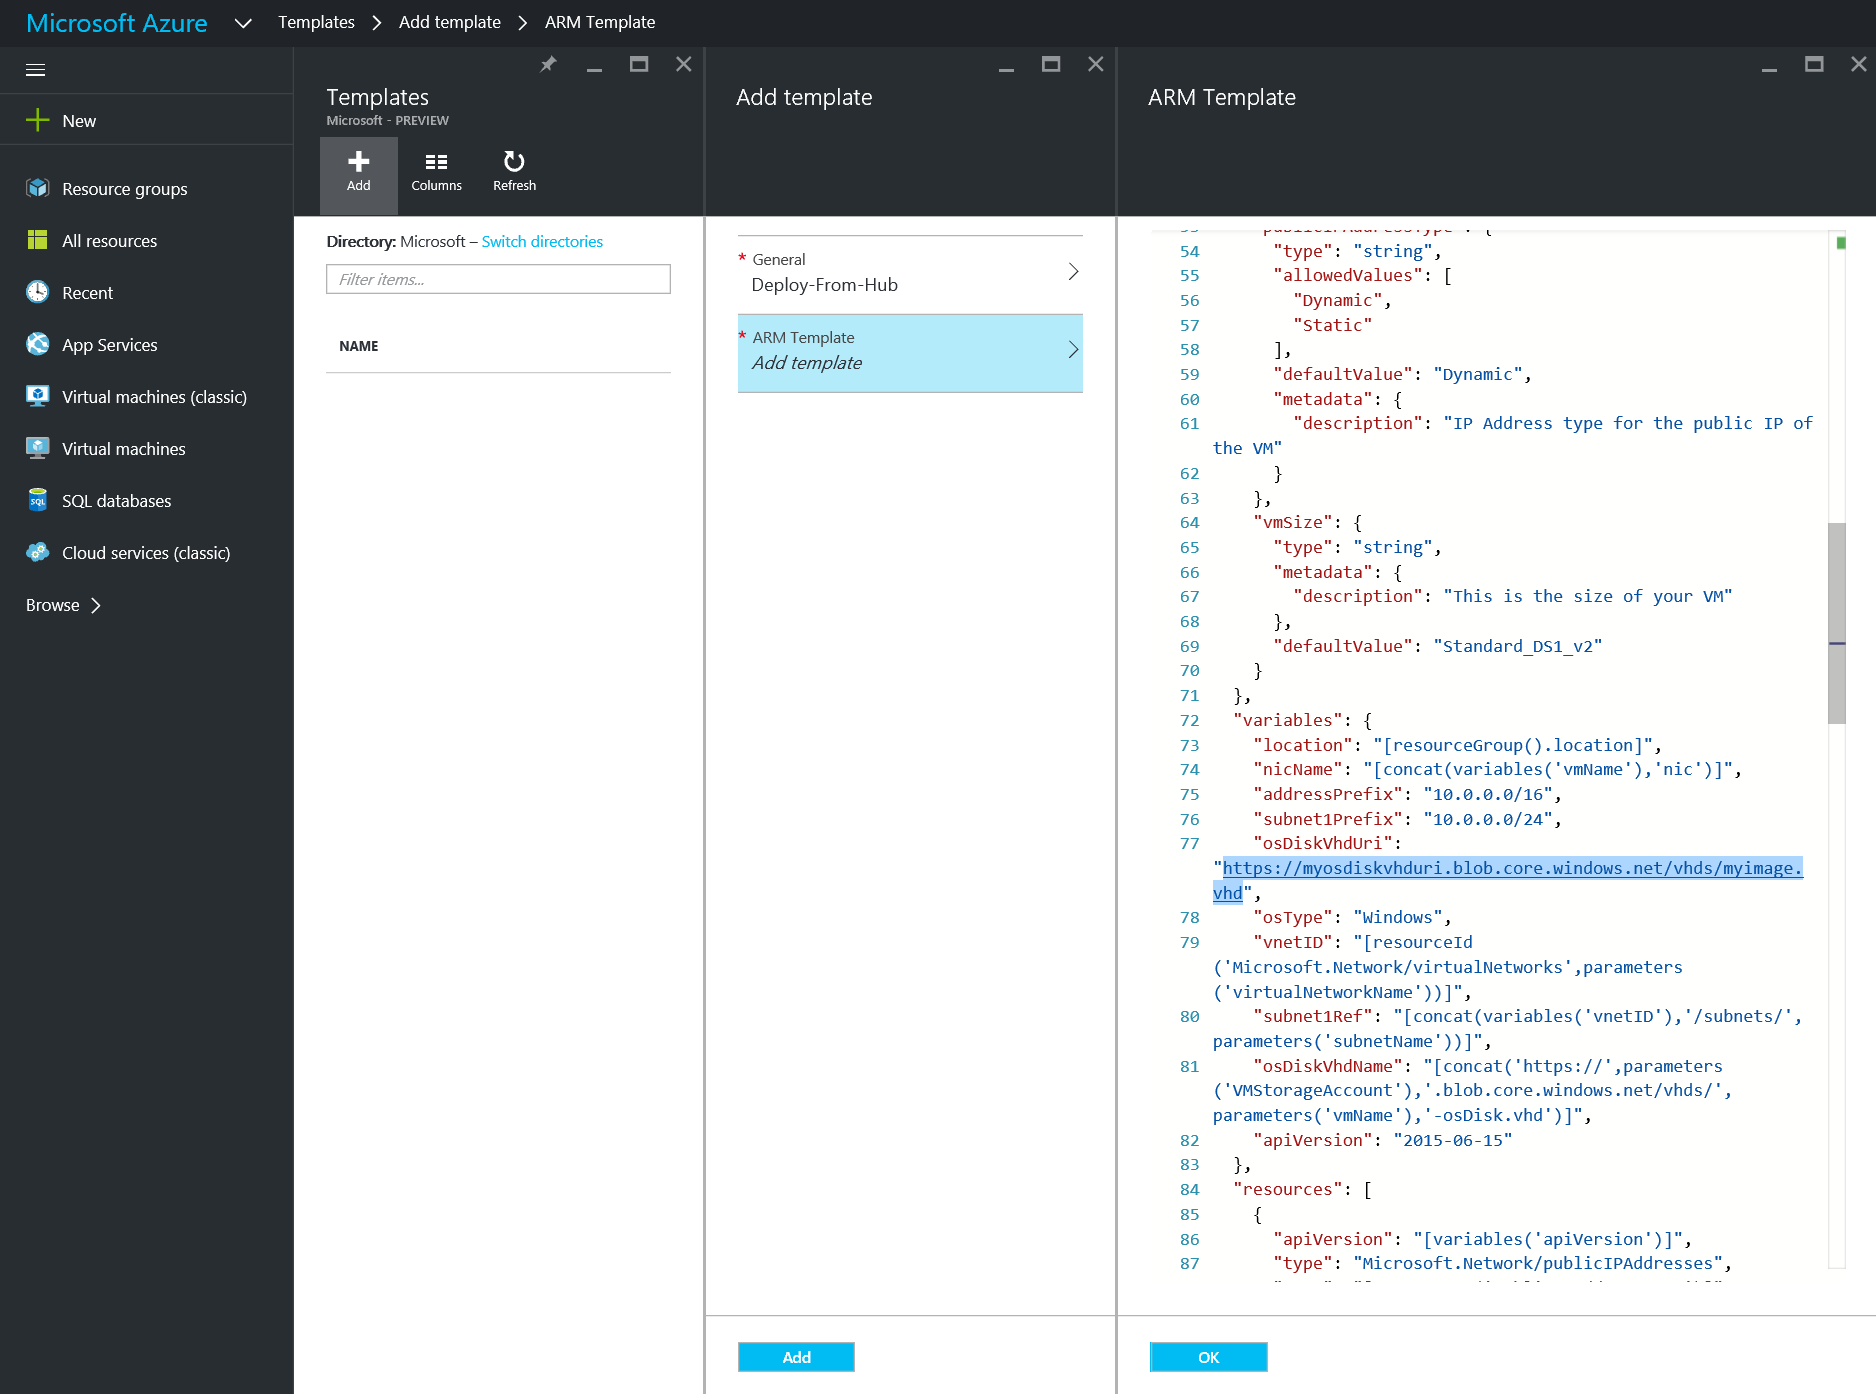 Azure - Browse - Templates - Add - General - change uri